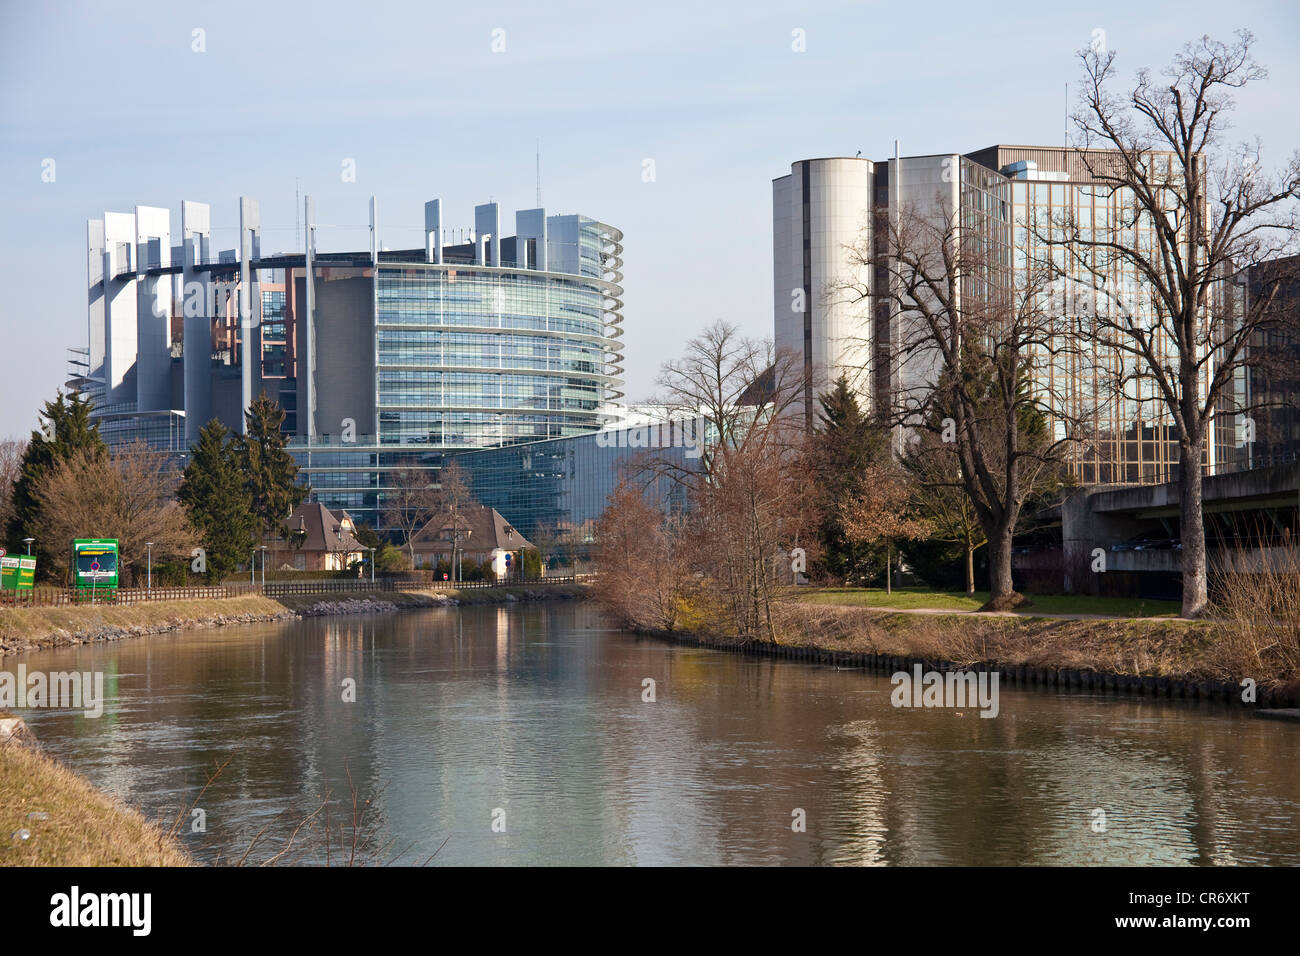 European Parliament on the Ill River, Strasbourg, Alsace, France, Europe - Stock Image